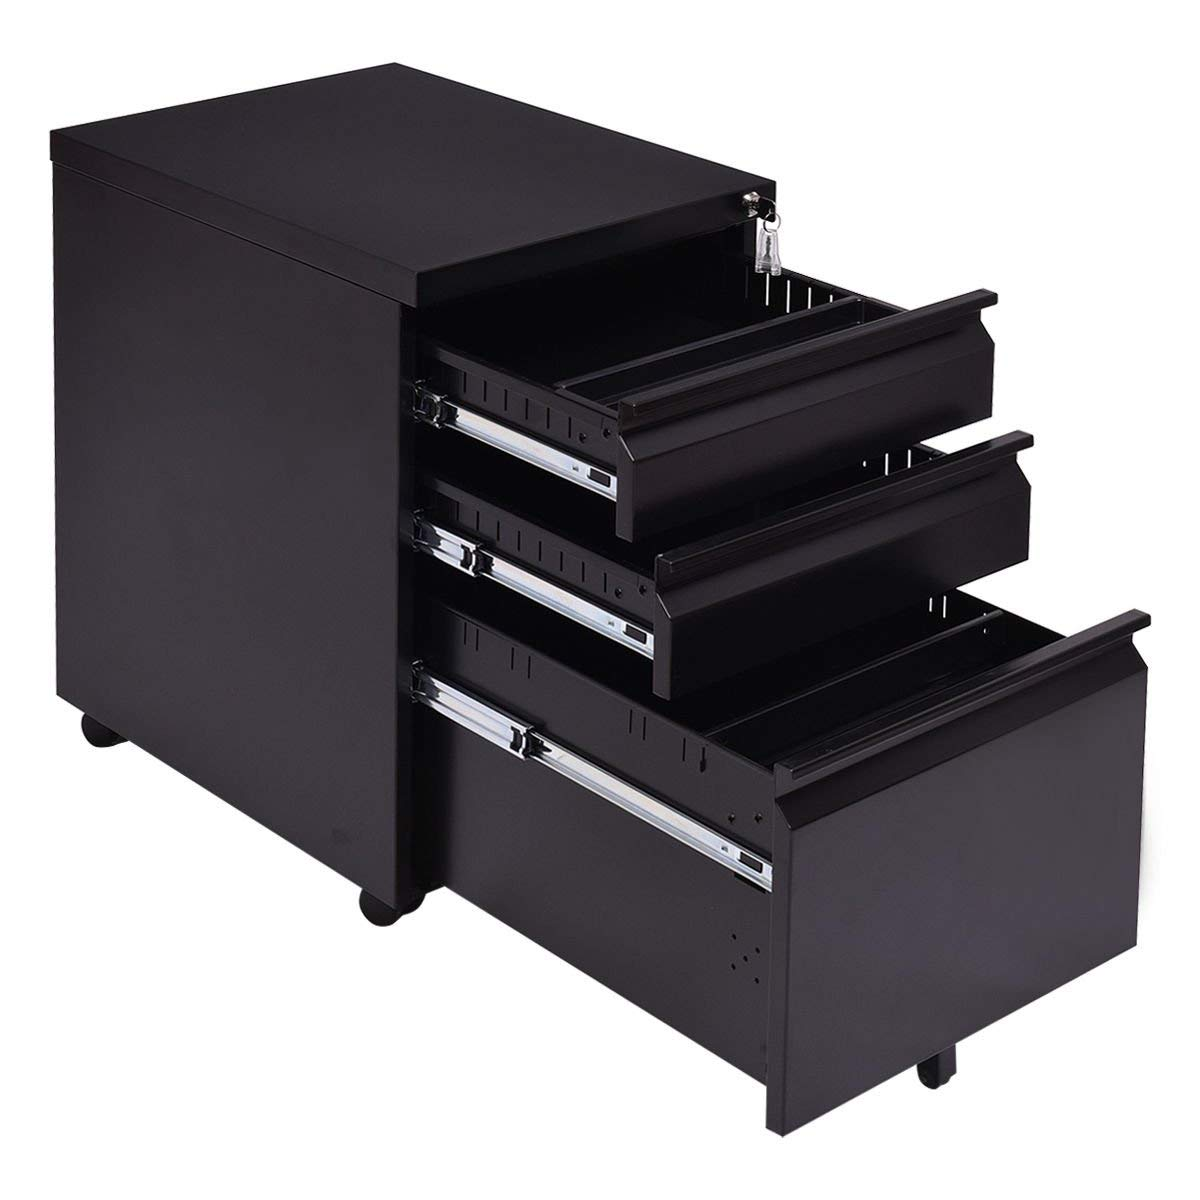 Cheap Top Meatl Cabinet Drawers Find Top Meatl Cabinet